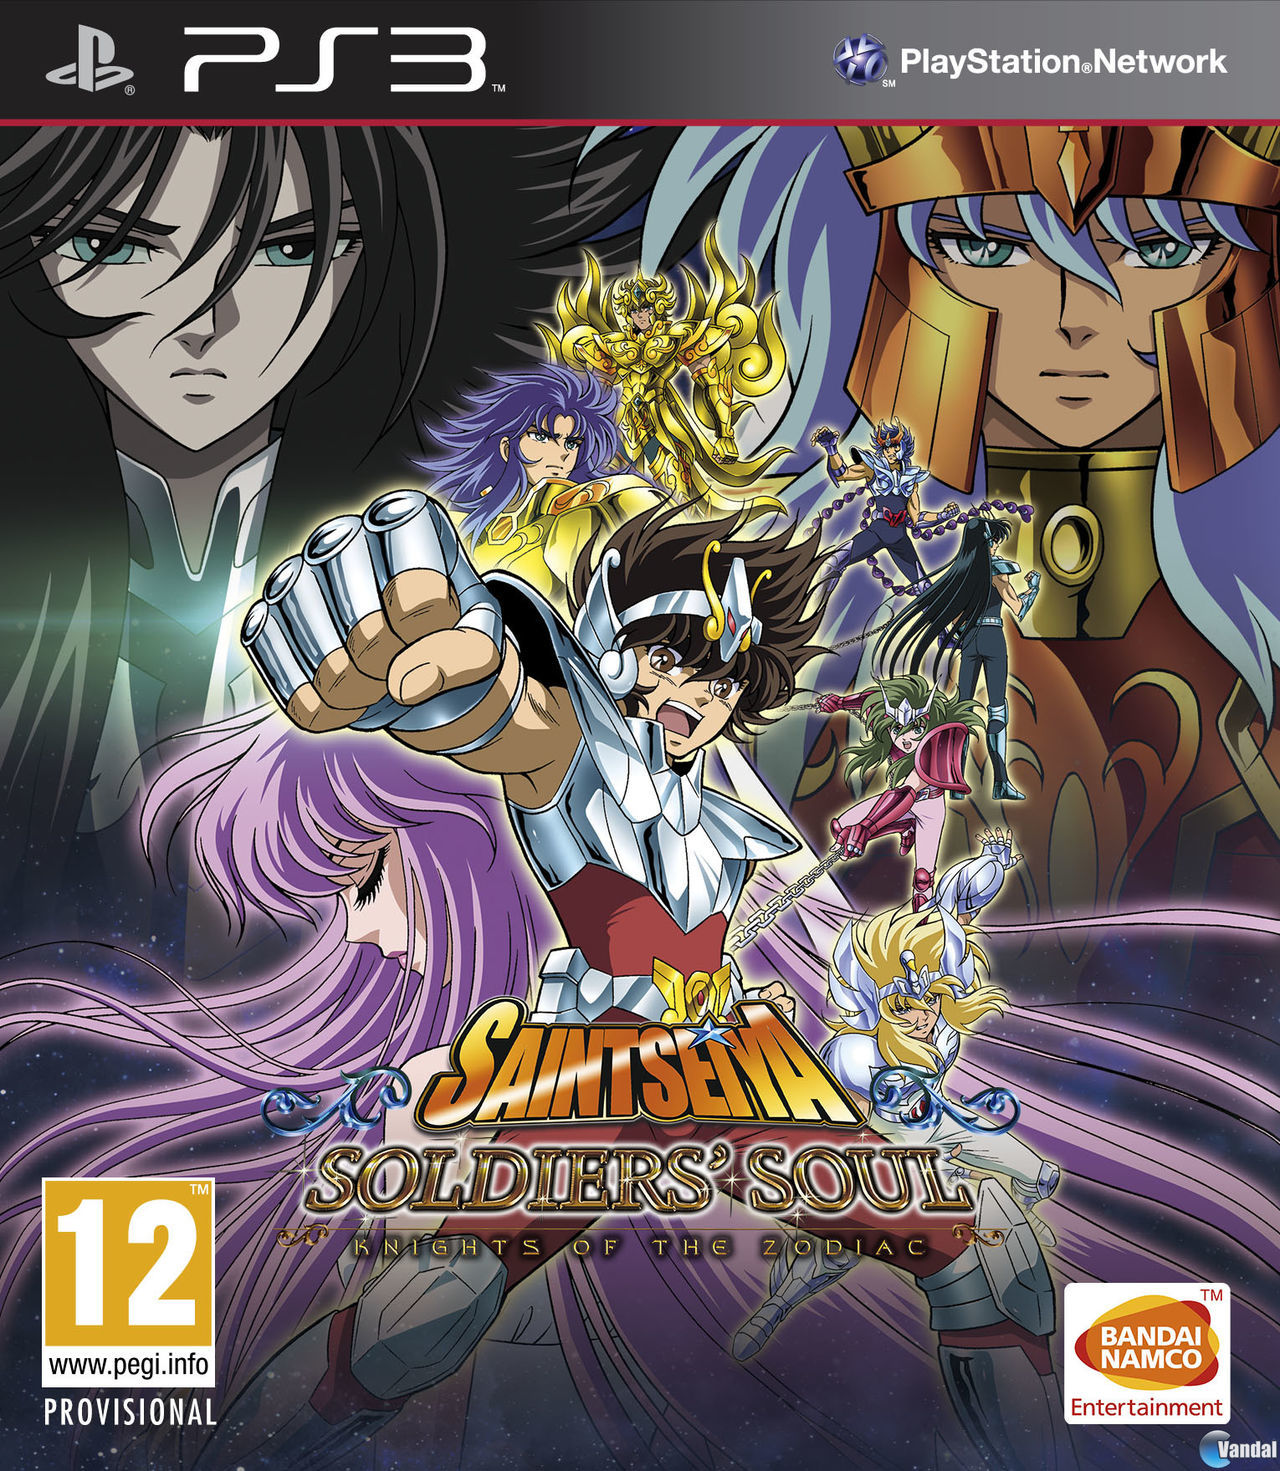 Saint Seiya Soldiers' Soul (PS3)